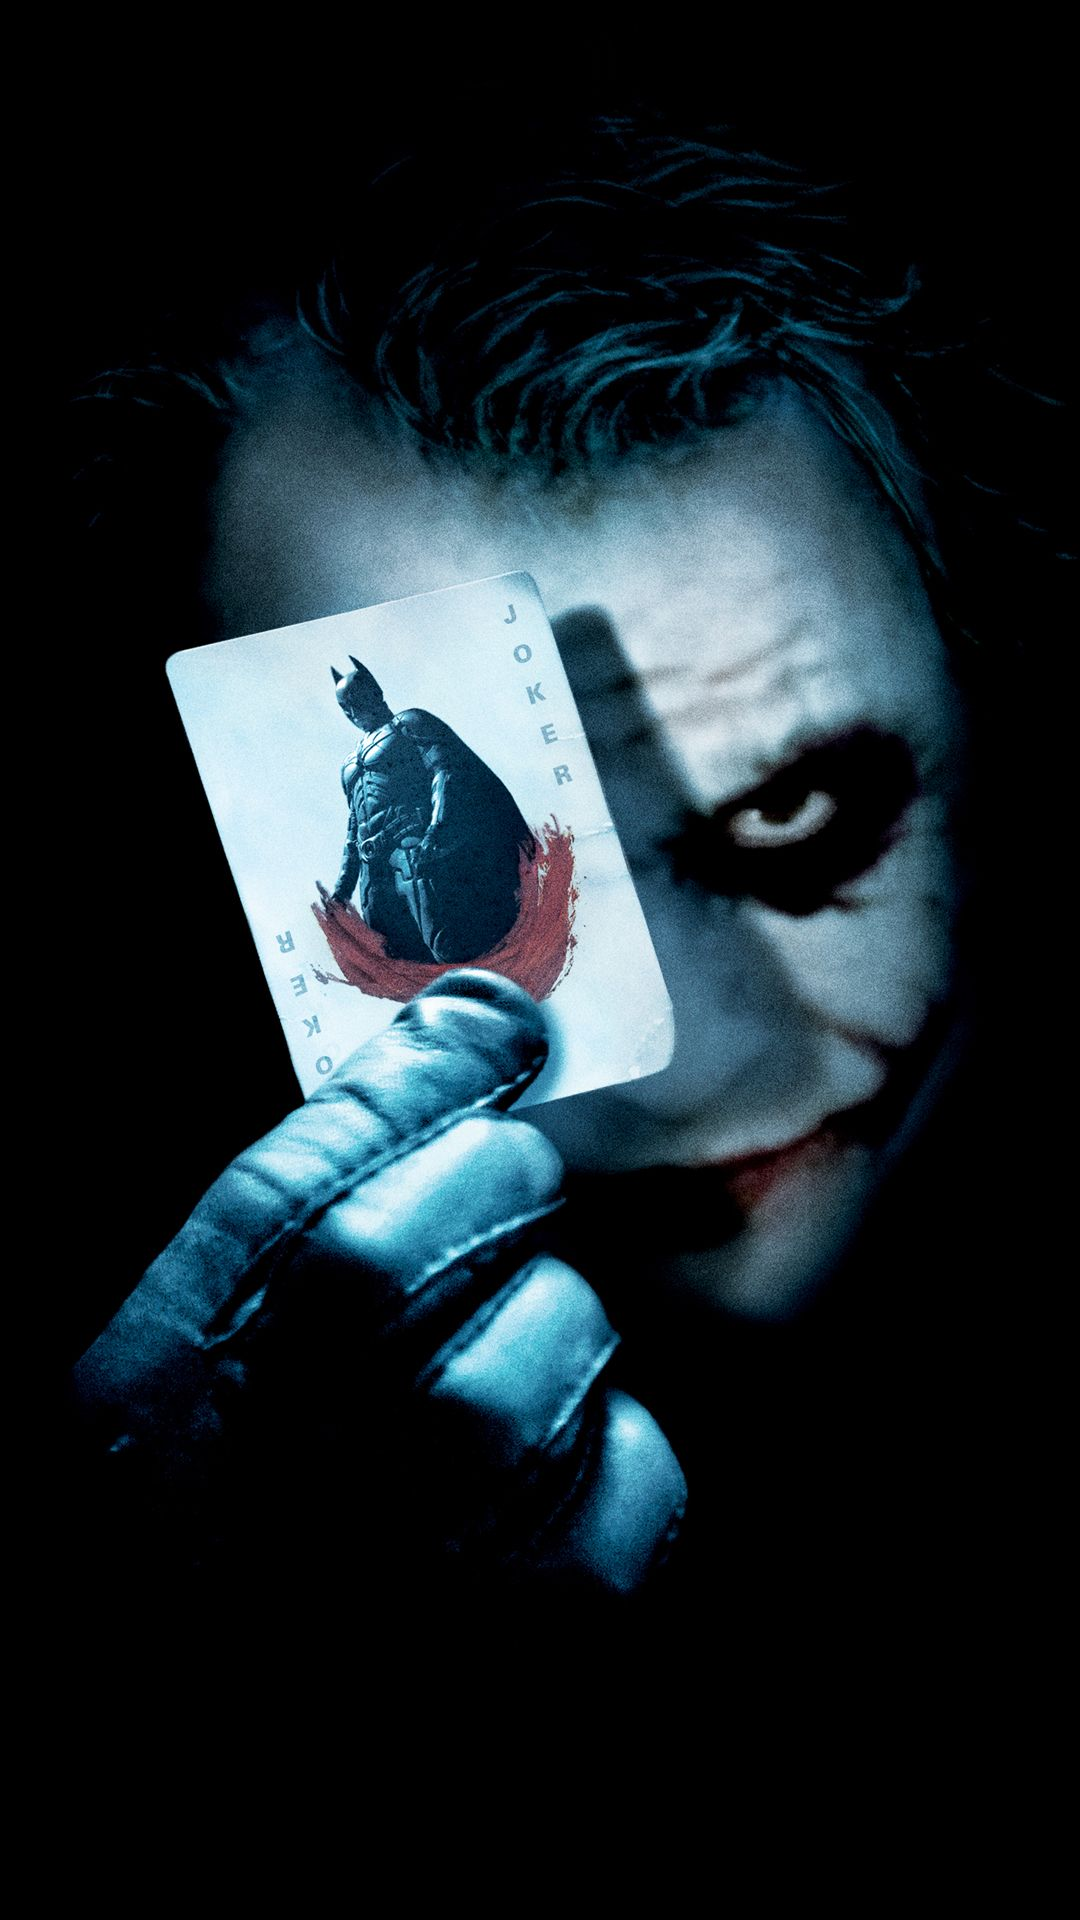 Vintage High Definition Mobile Pictures Wallpapers Hd Phone Pictures Backgrounds Landscape Phone Locks Joker Wallpapers Joker Iphone Wallpaper Joker Art